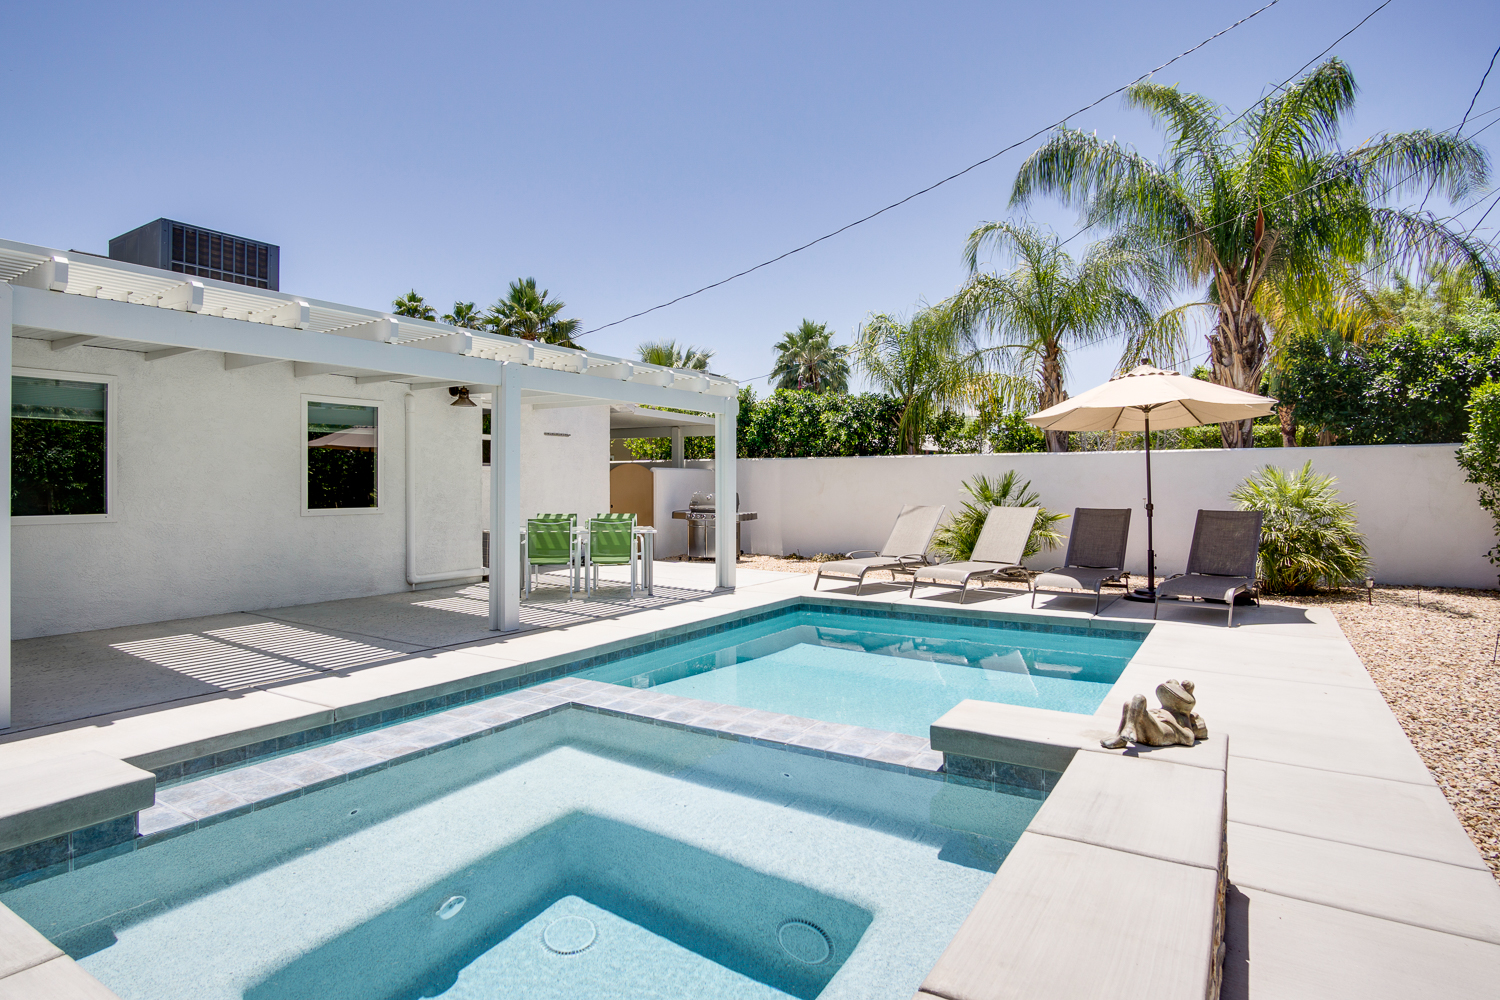 Palm Springs CA Vacation Rental Beautiful, private backyard